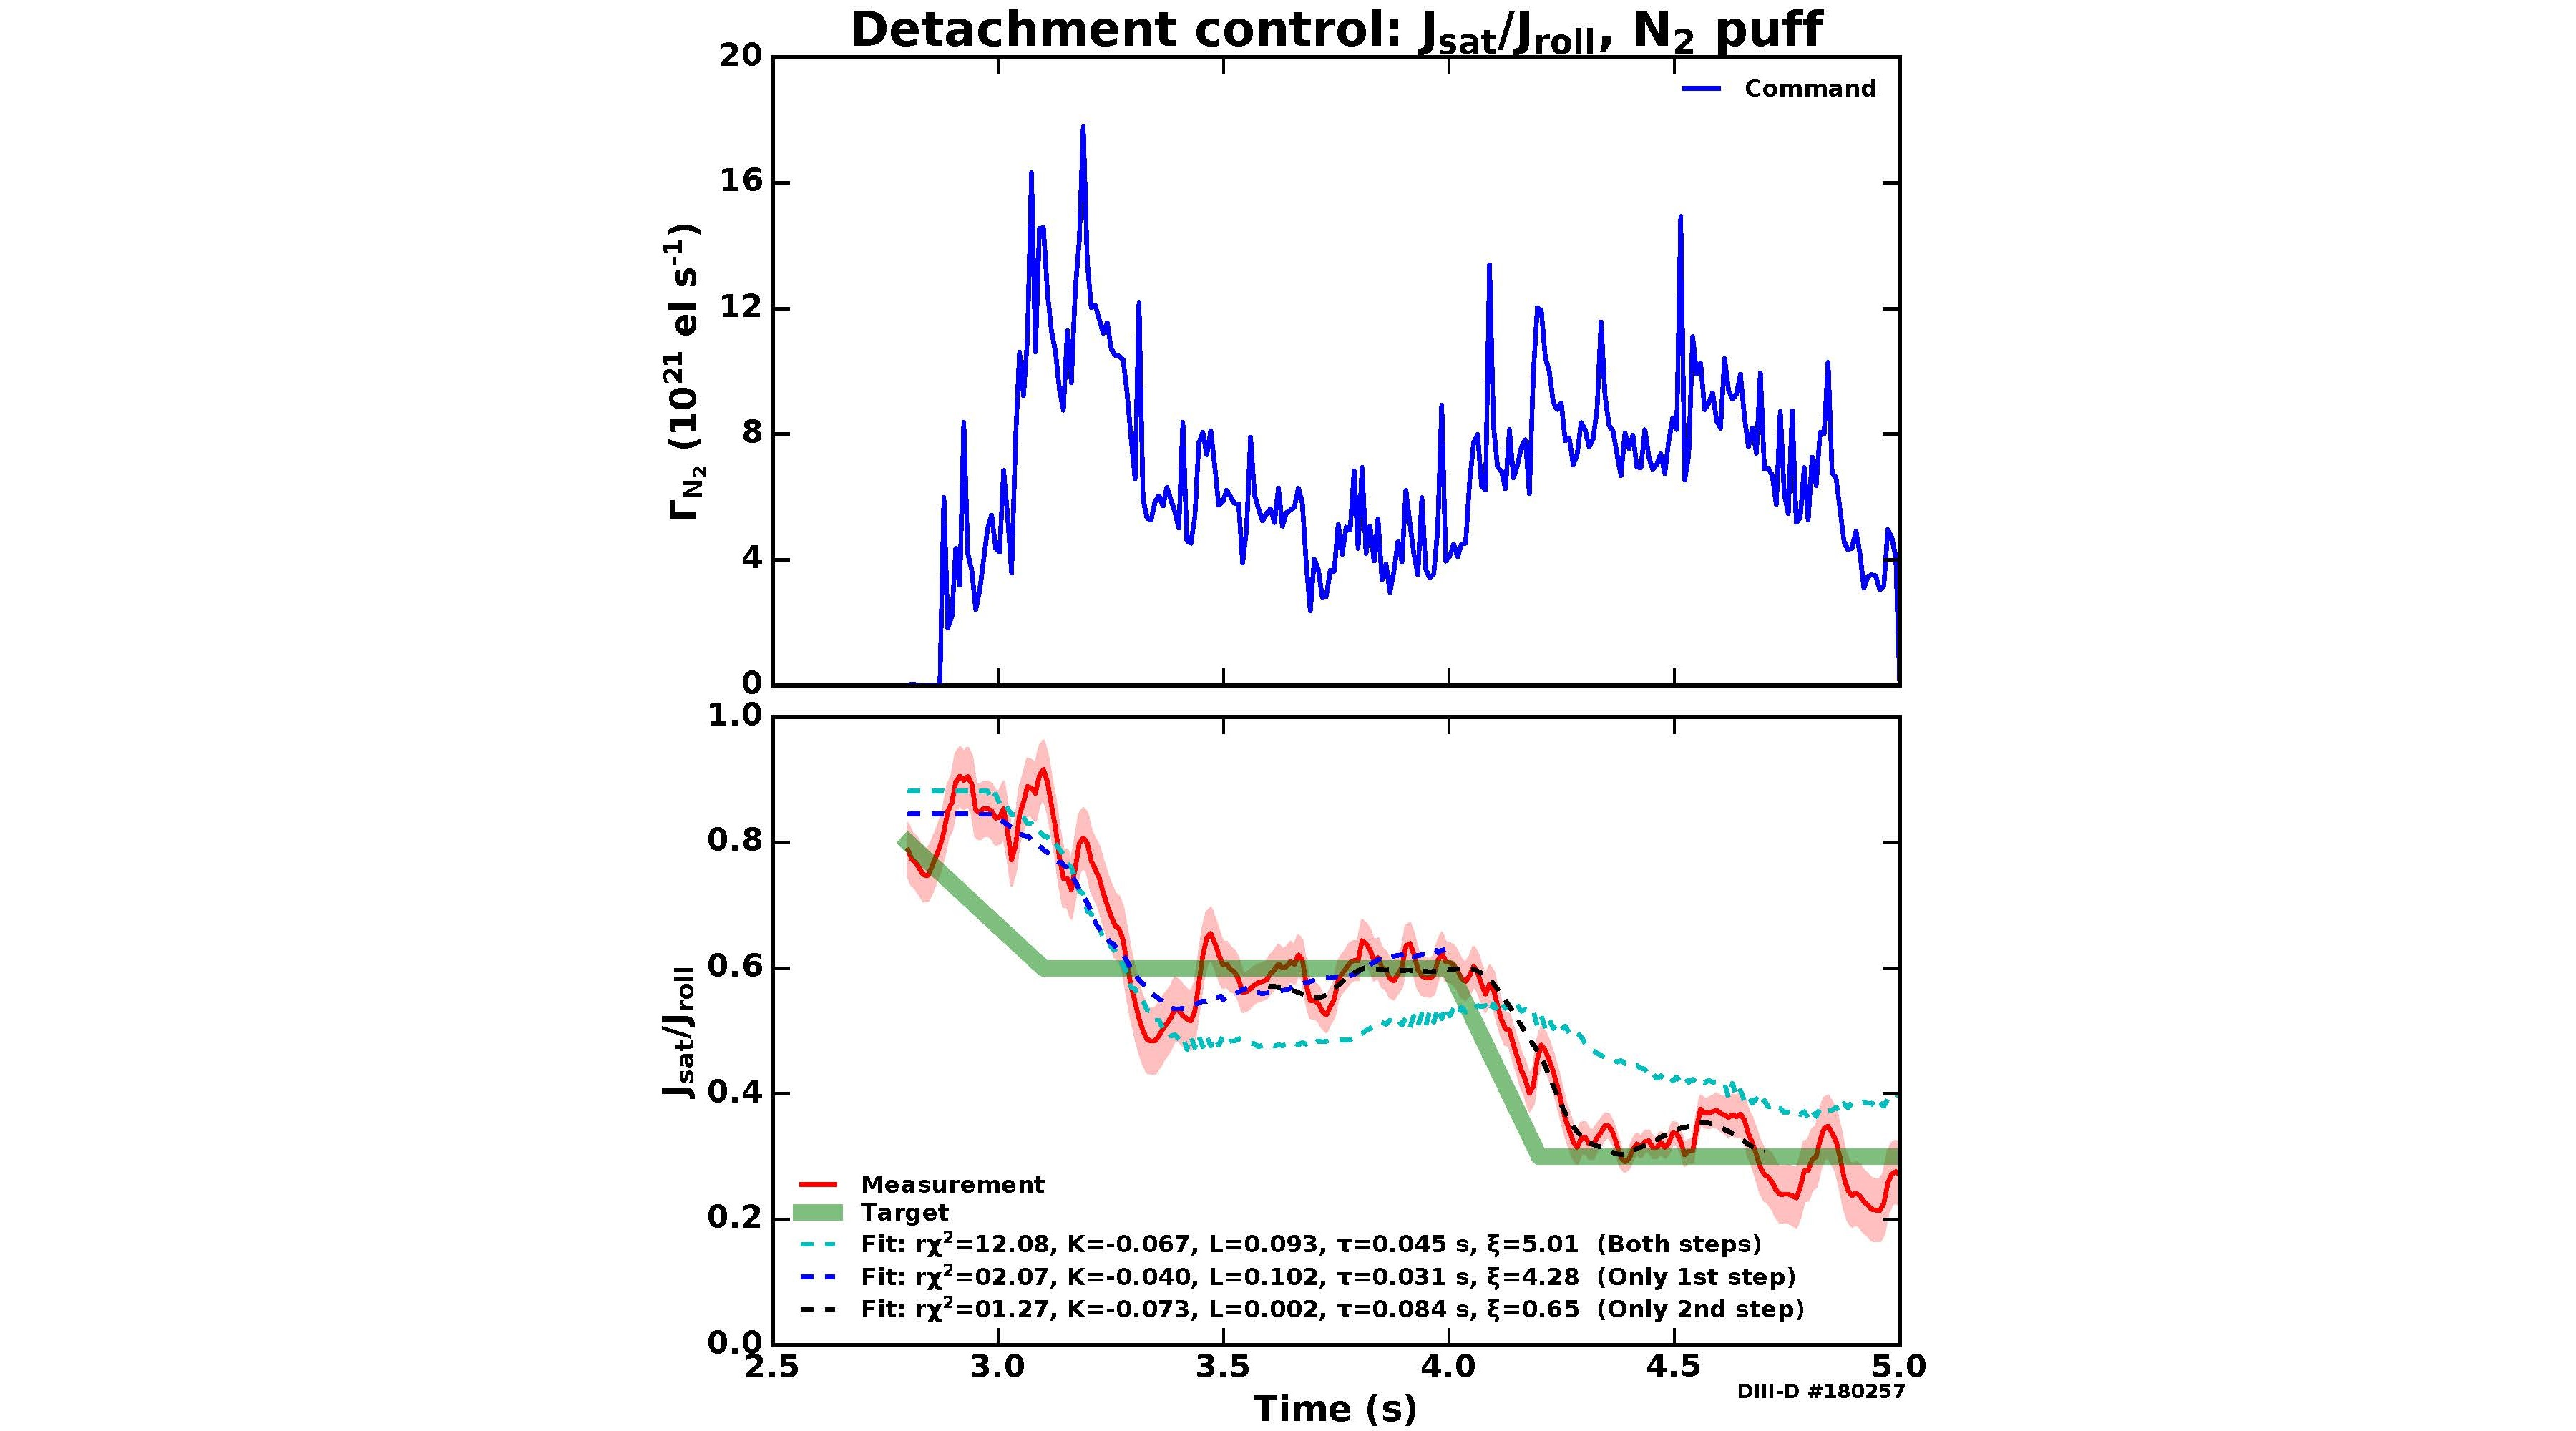 Detachment control: actively controlled gas flow rate and Jsat normalized to its rollover value. The target and measurement are shown along with the modeled response from the SOPDT model, fit to different time ranges.